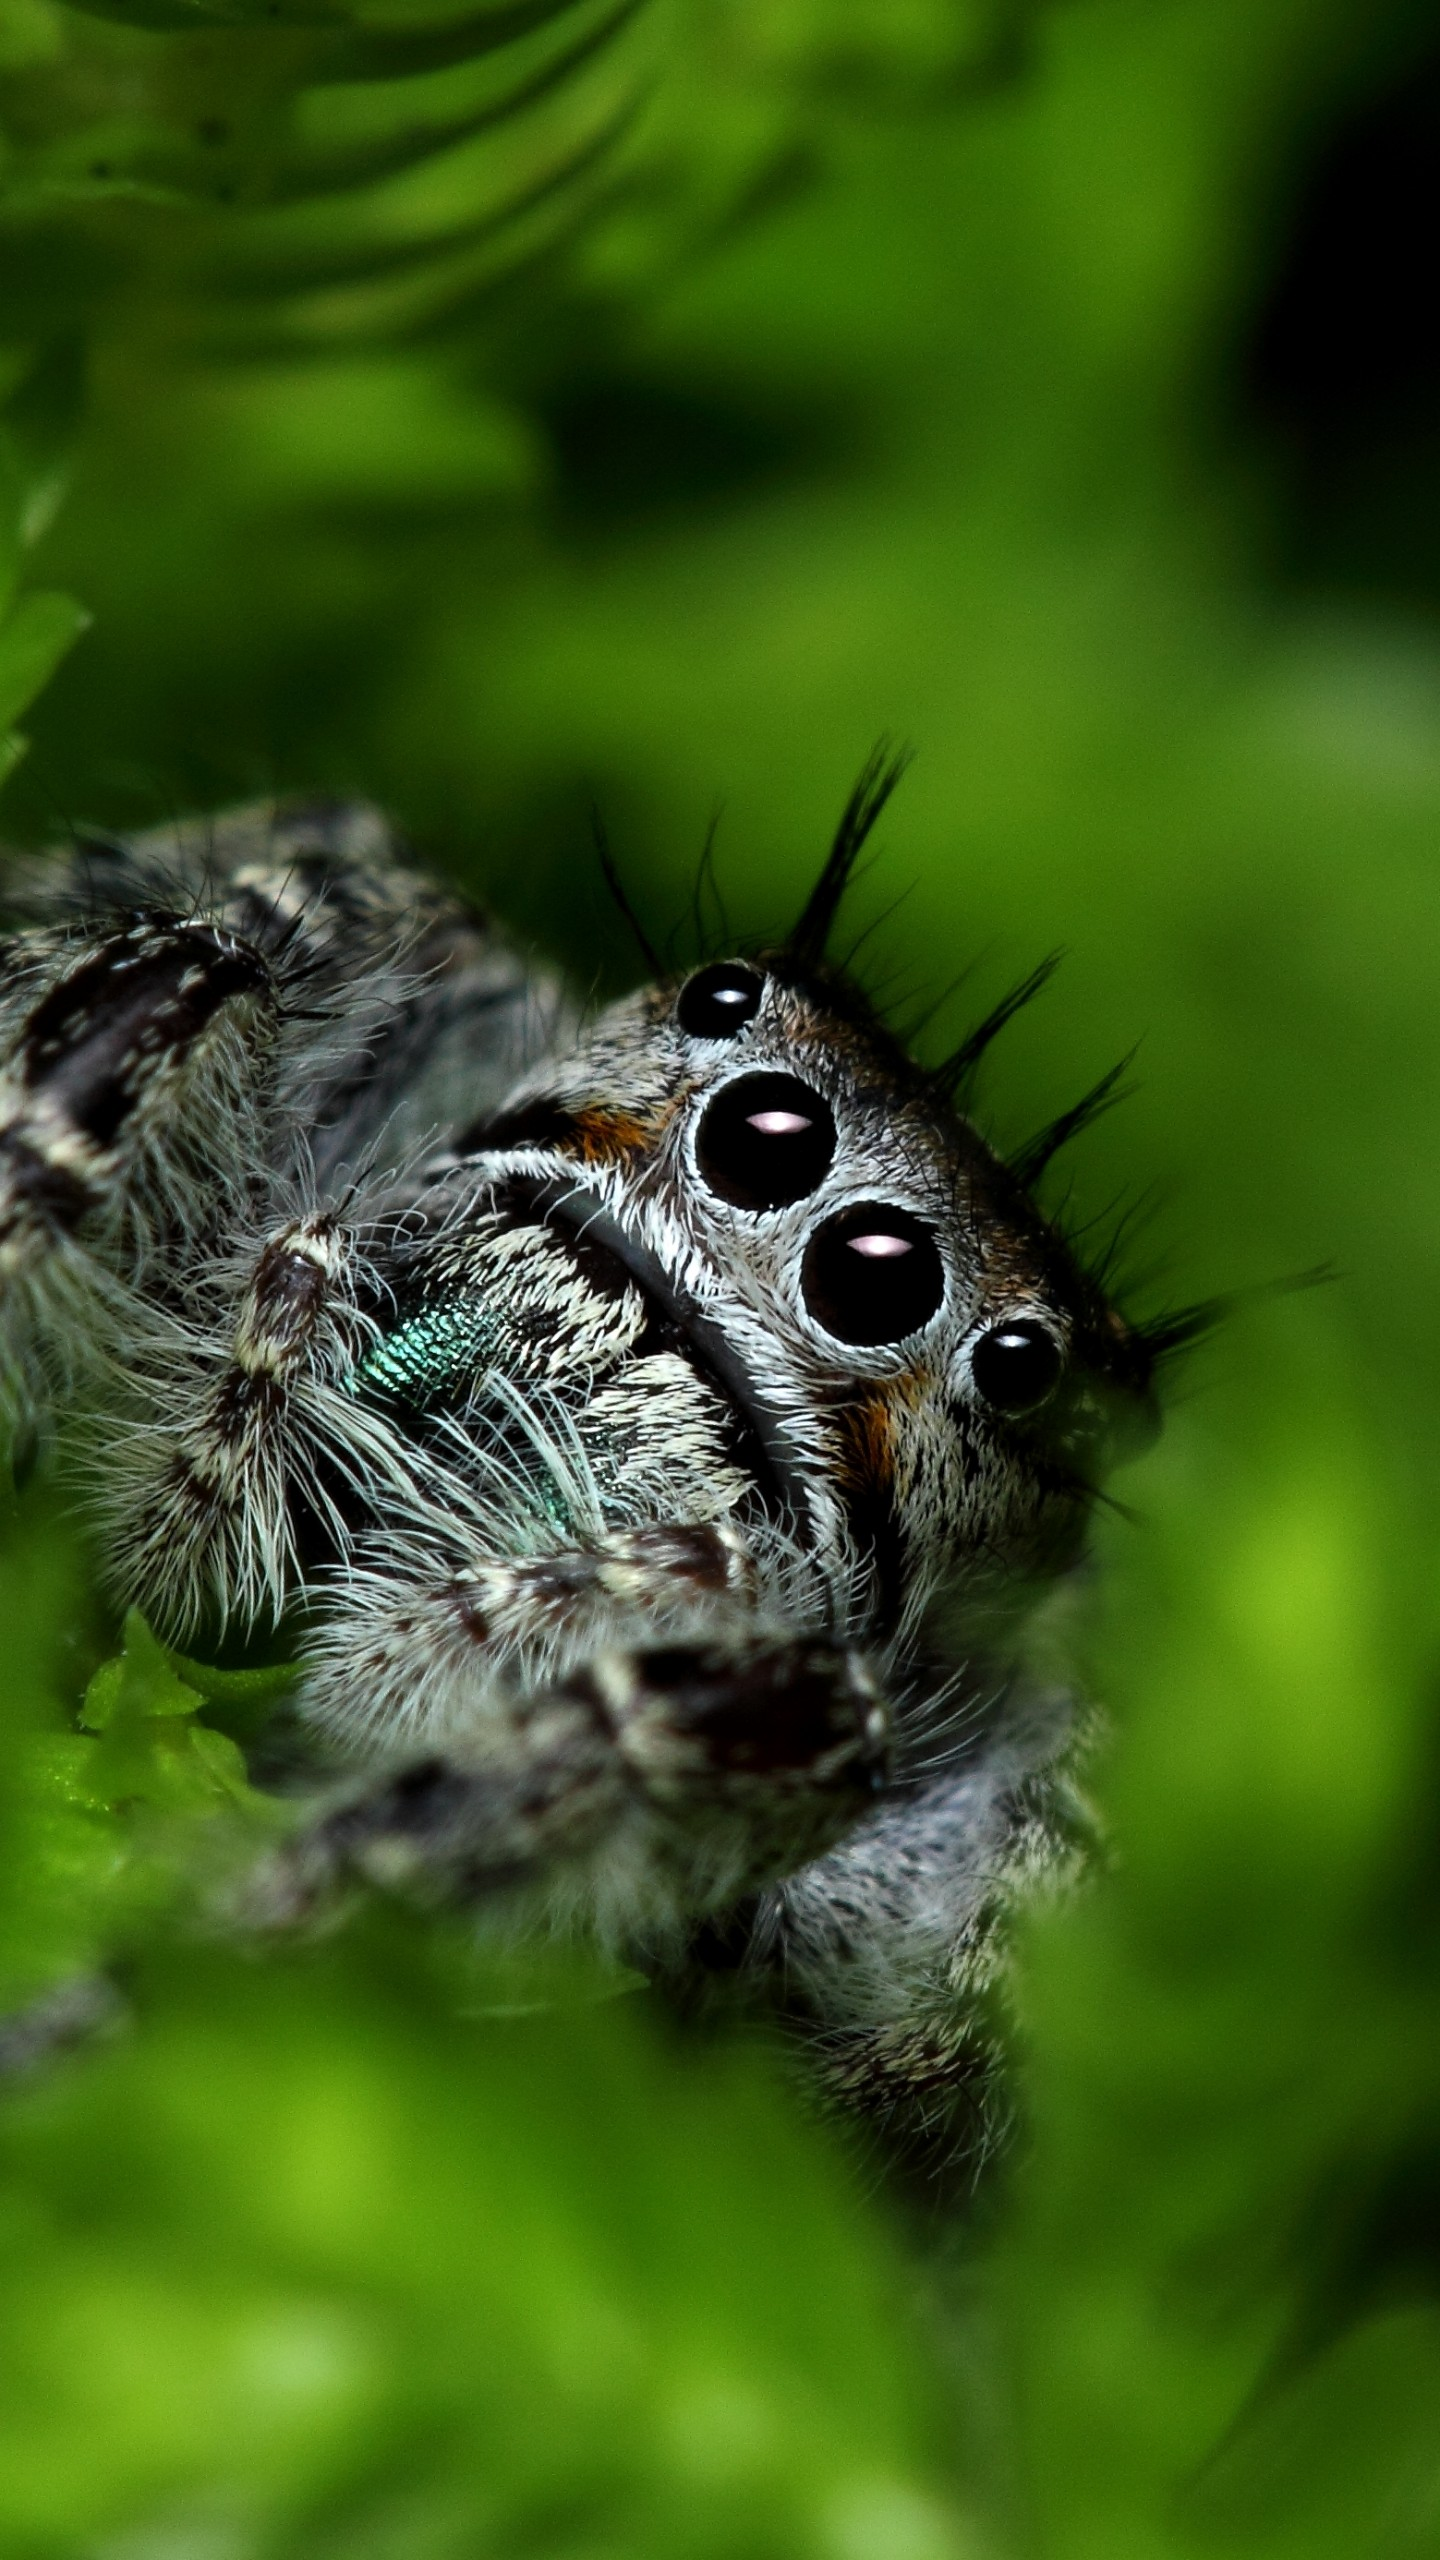 Blue Wallpaper For Girls Wallpaper Jumping Spider Eyes Insects Leaves Green